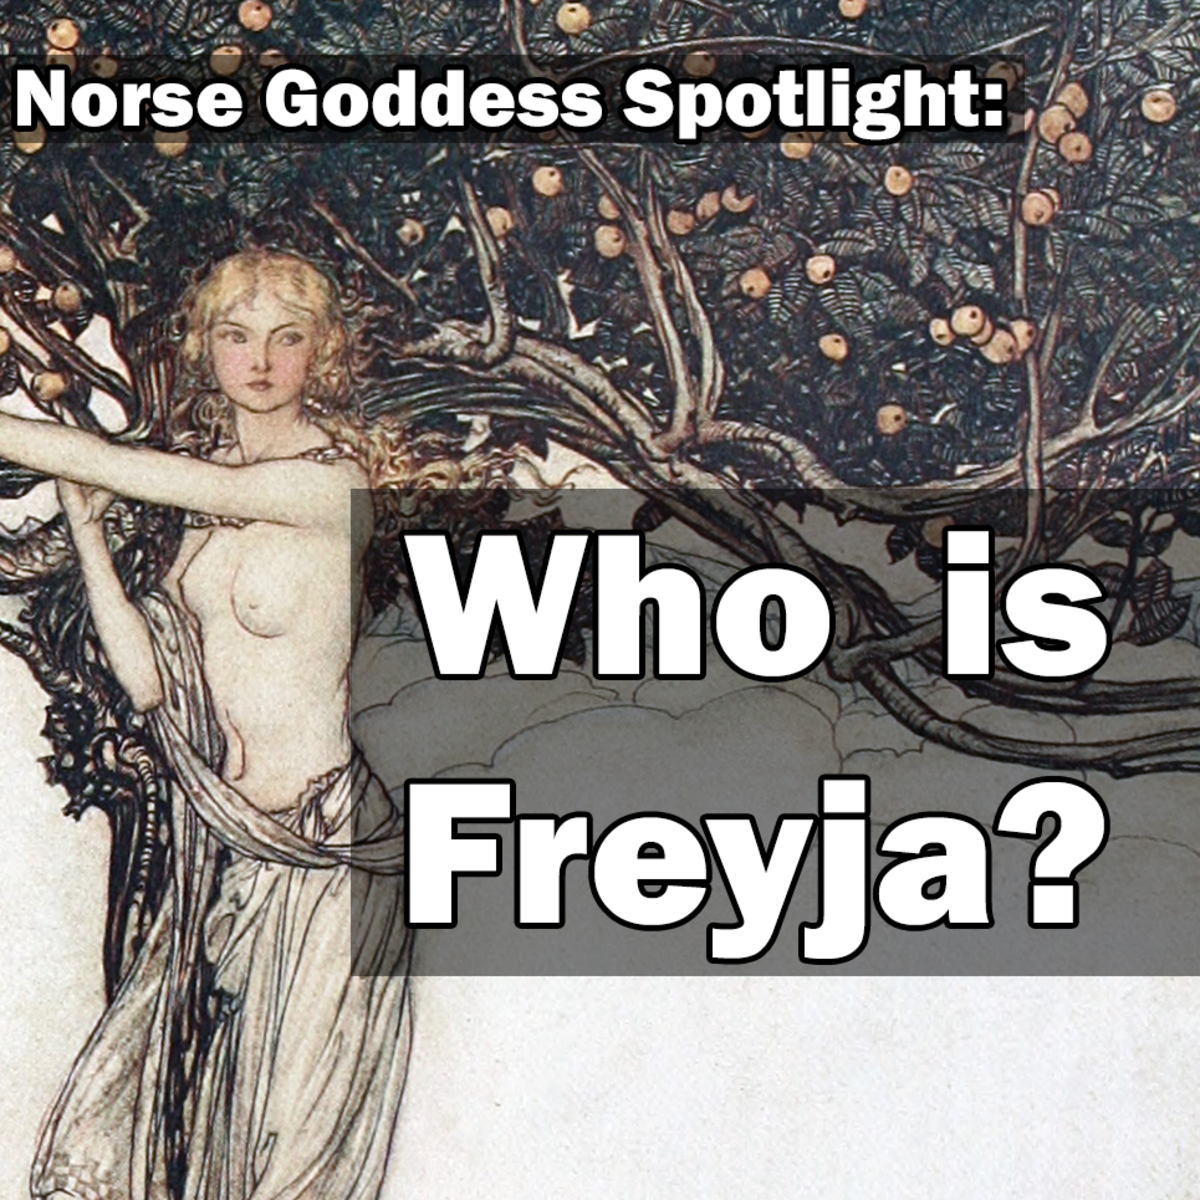 Norse Goddess Spotlight: Who Is Freyja?